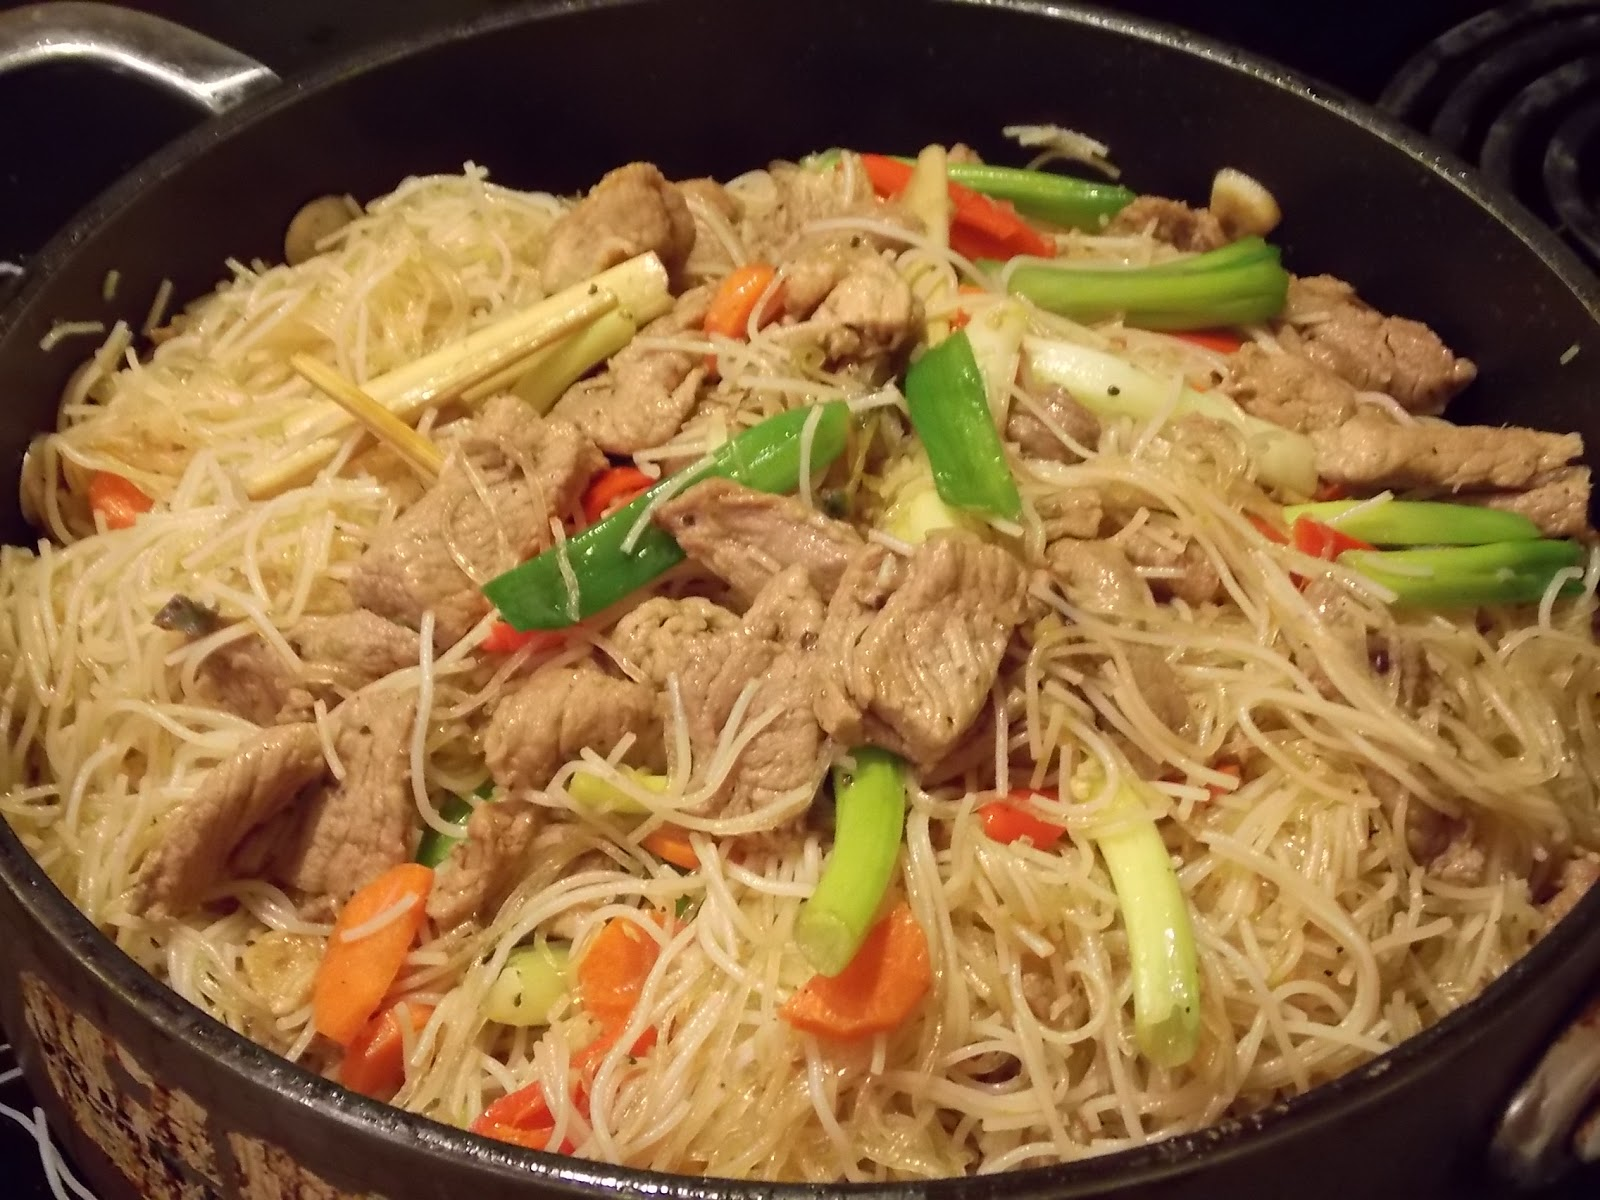 dinner noodle for flour Noodles is Glass Stir Pork Noodles and Fry Grass Rice Lemon with